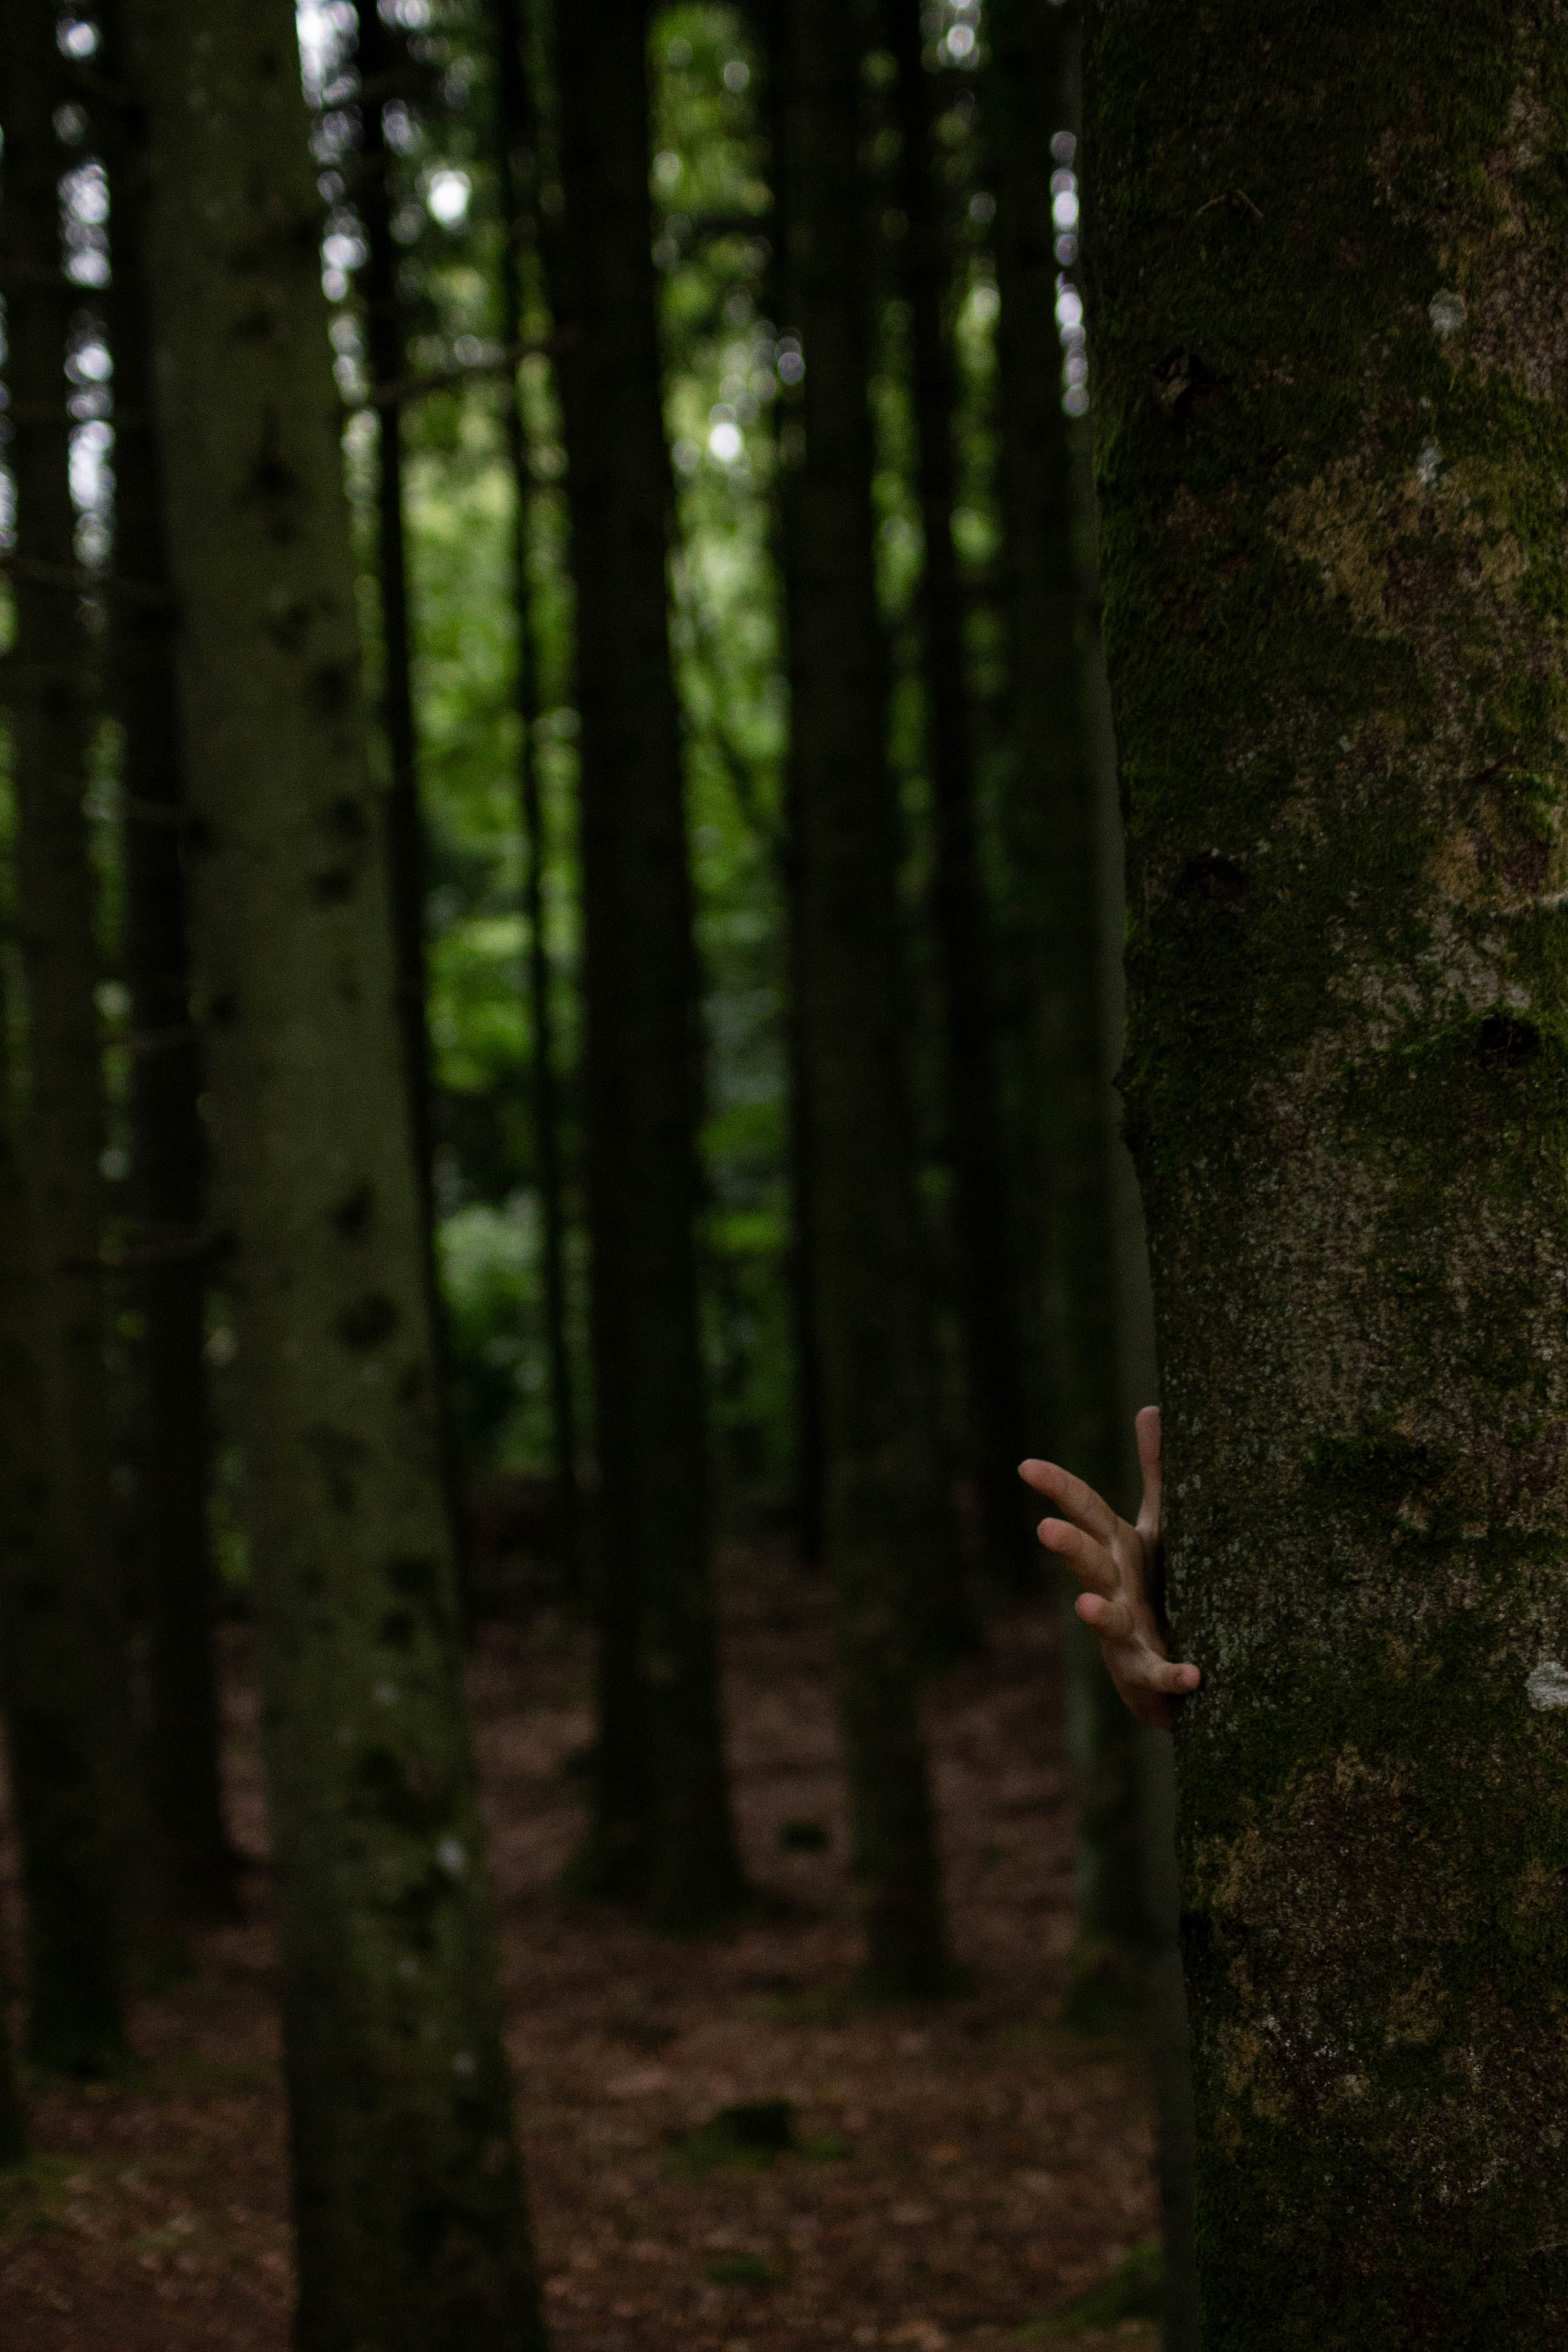 Free stock photo of dark, fingers, forest, hand